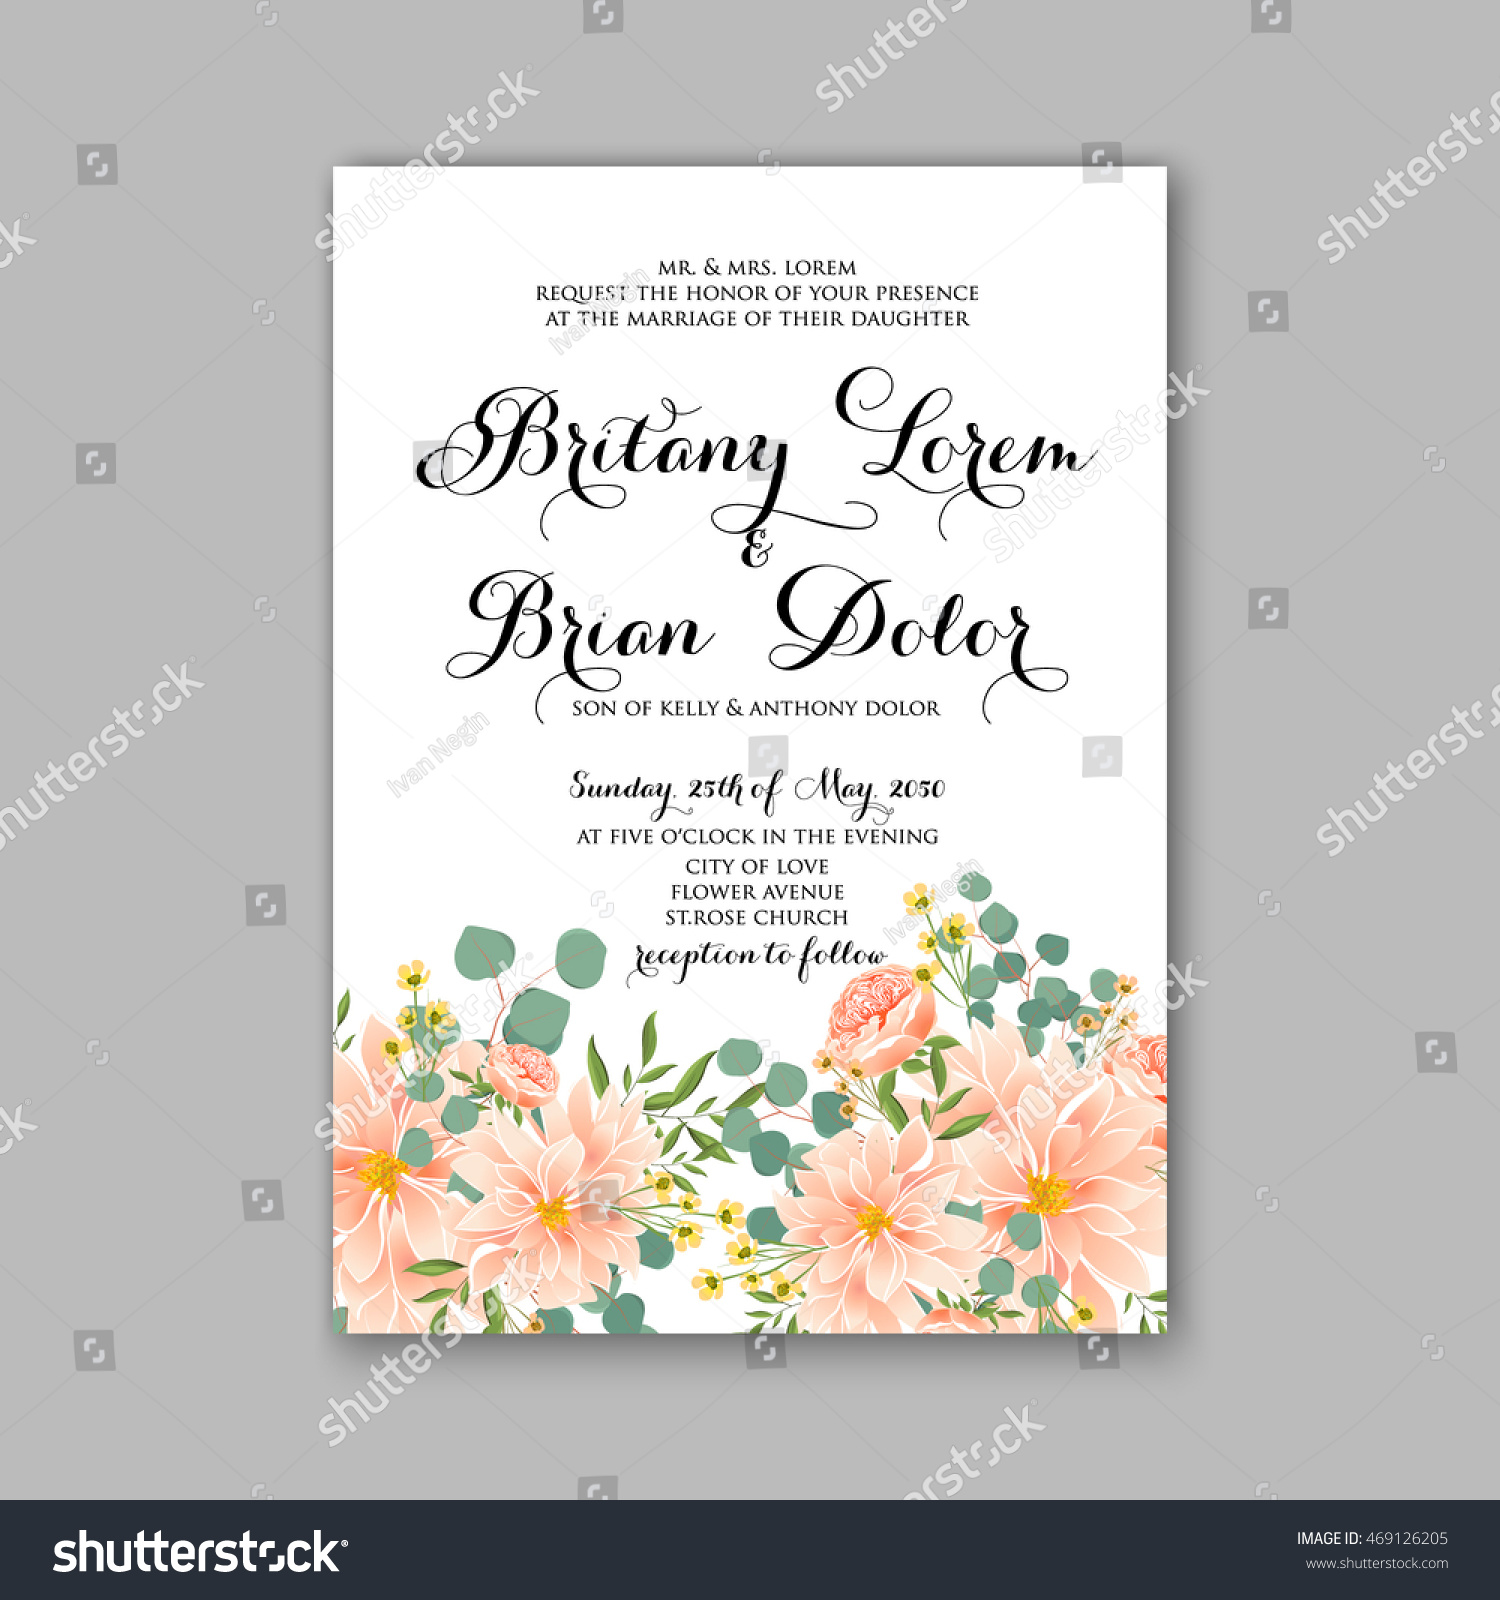 Beautiful Wedding Floral Vector Invitation Sample Stock Vector (2018 ...